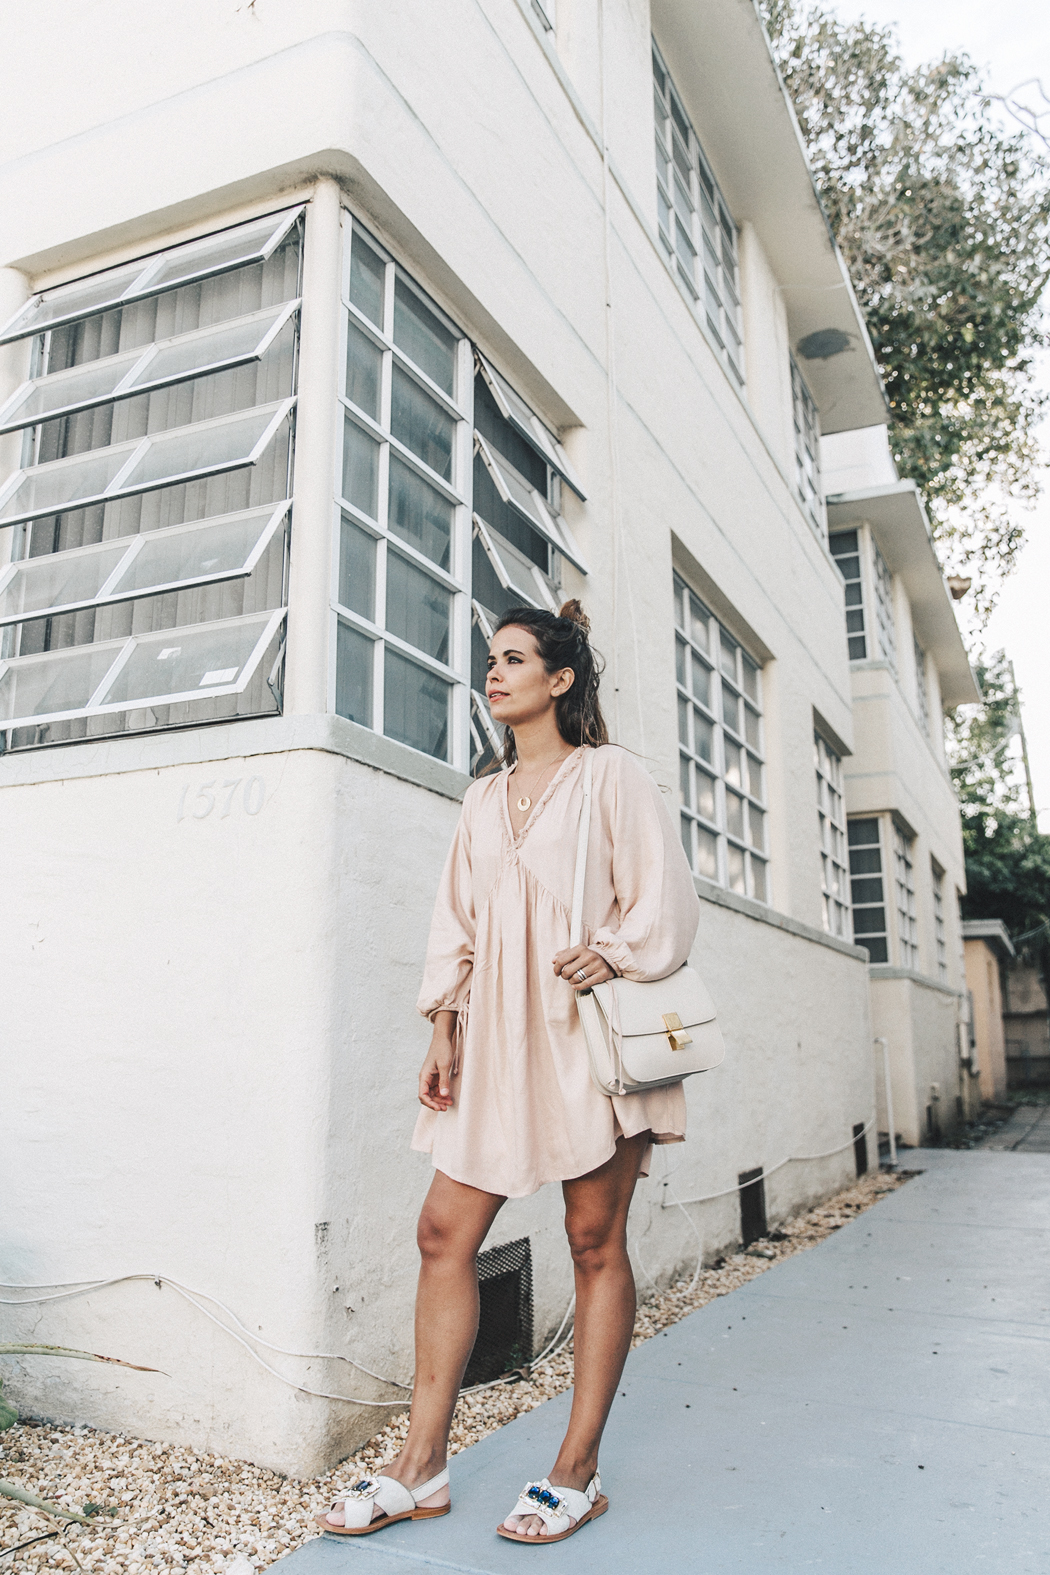 Miami-Pink_Dress-Marni_Sandals-Outfit-Collage_On_The_Road-Street_Style-34